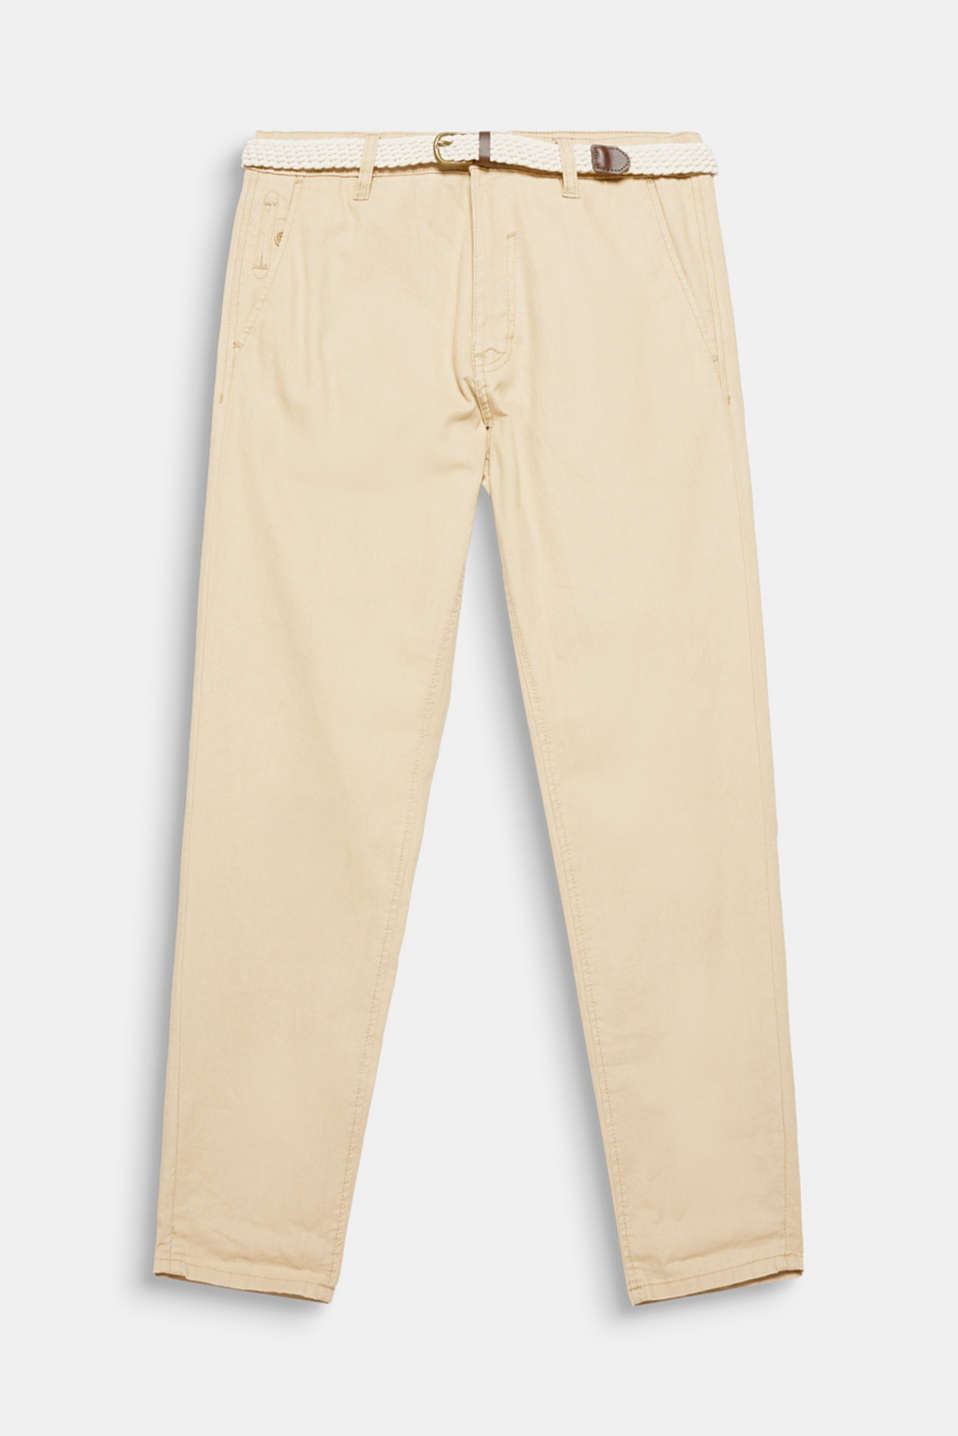 The colour-coordinated braided belt completes the look of these summery lightweight trousers in blended linen.